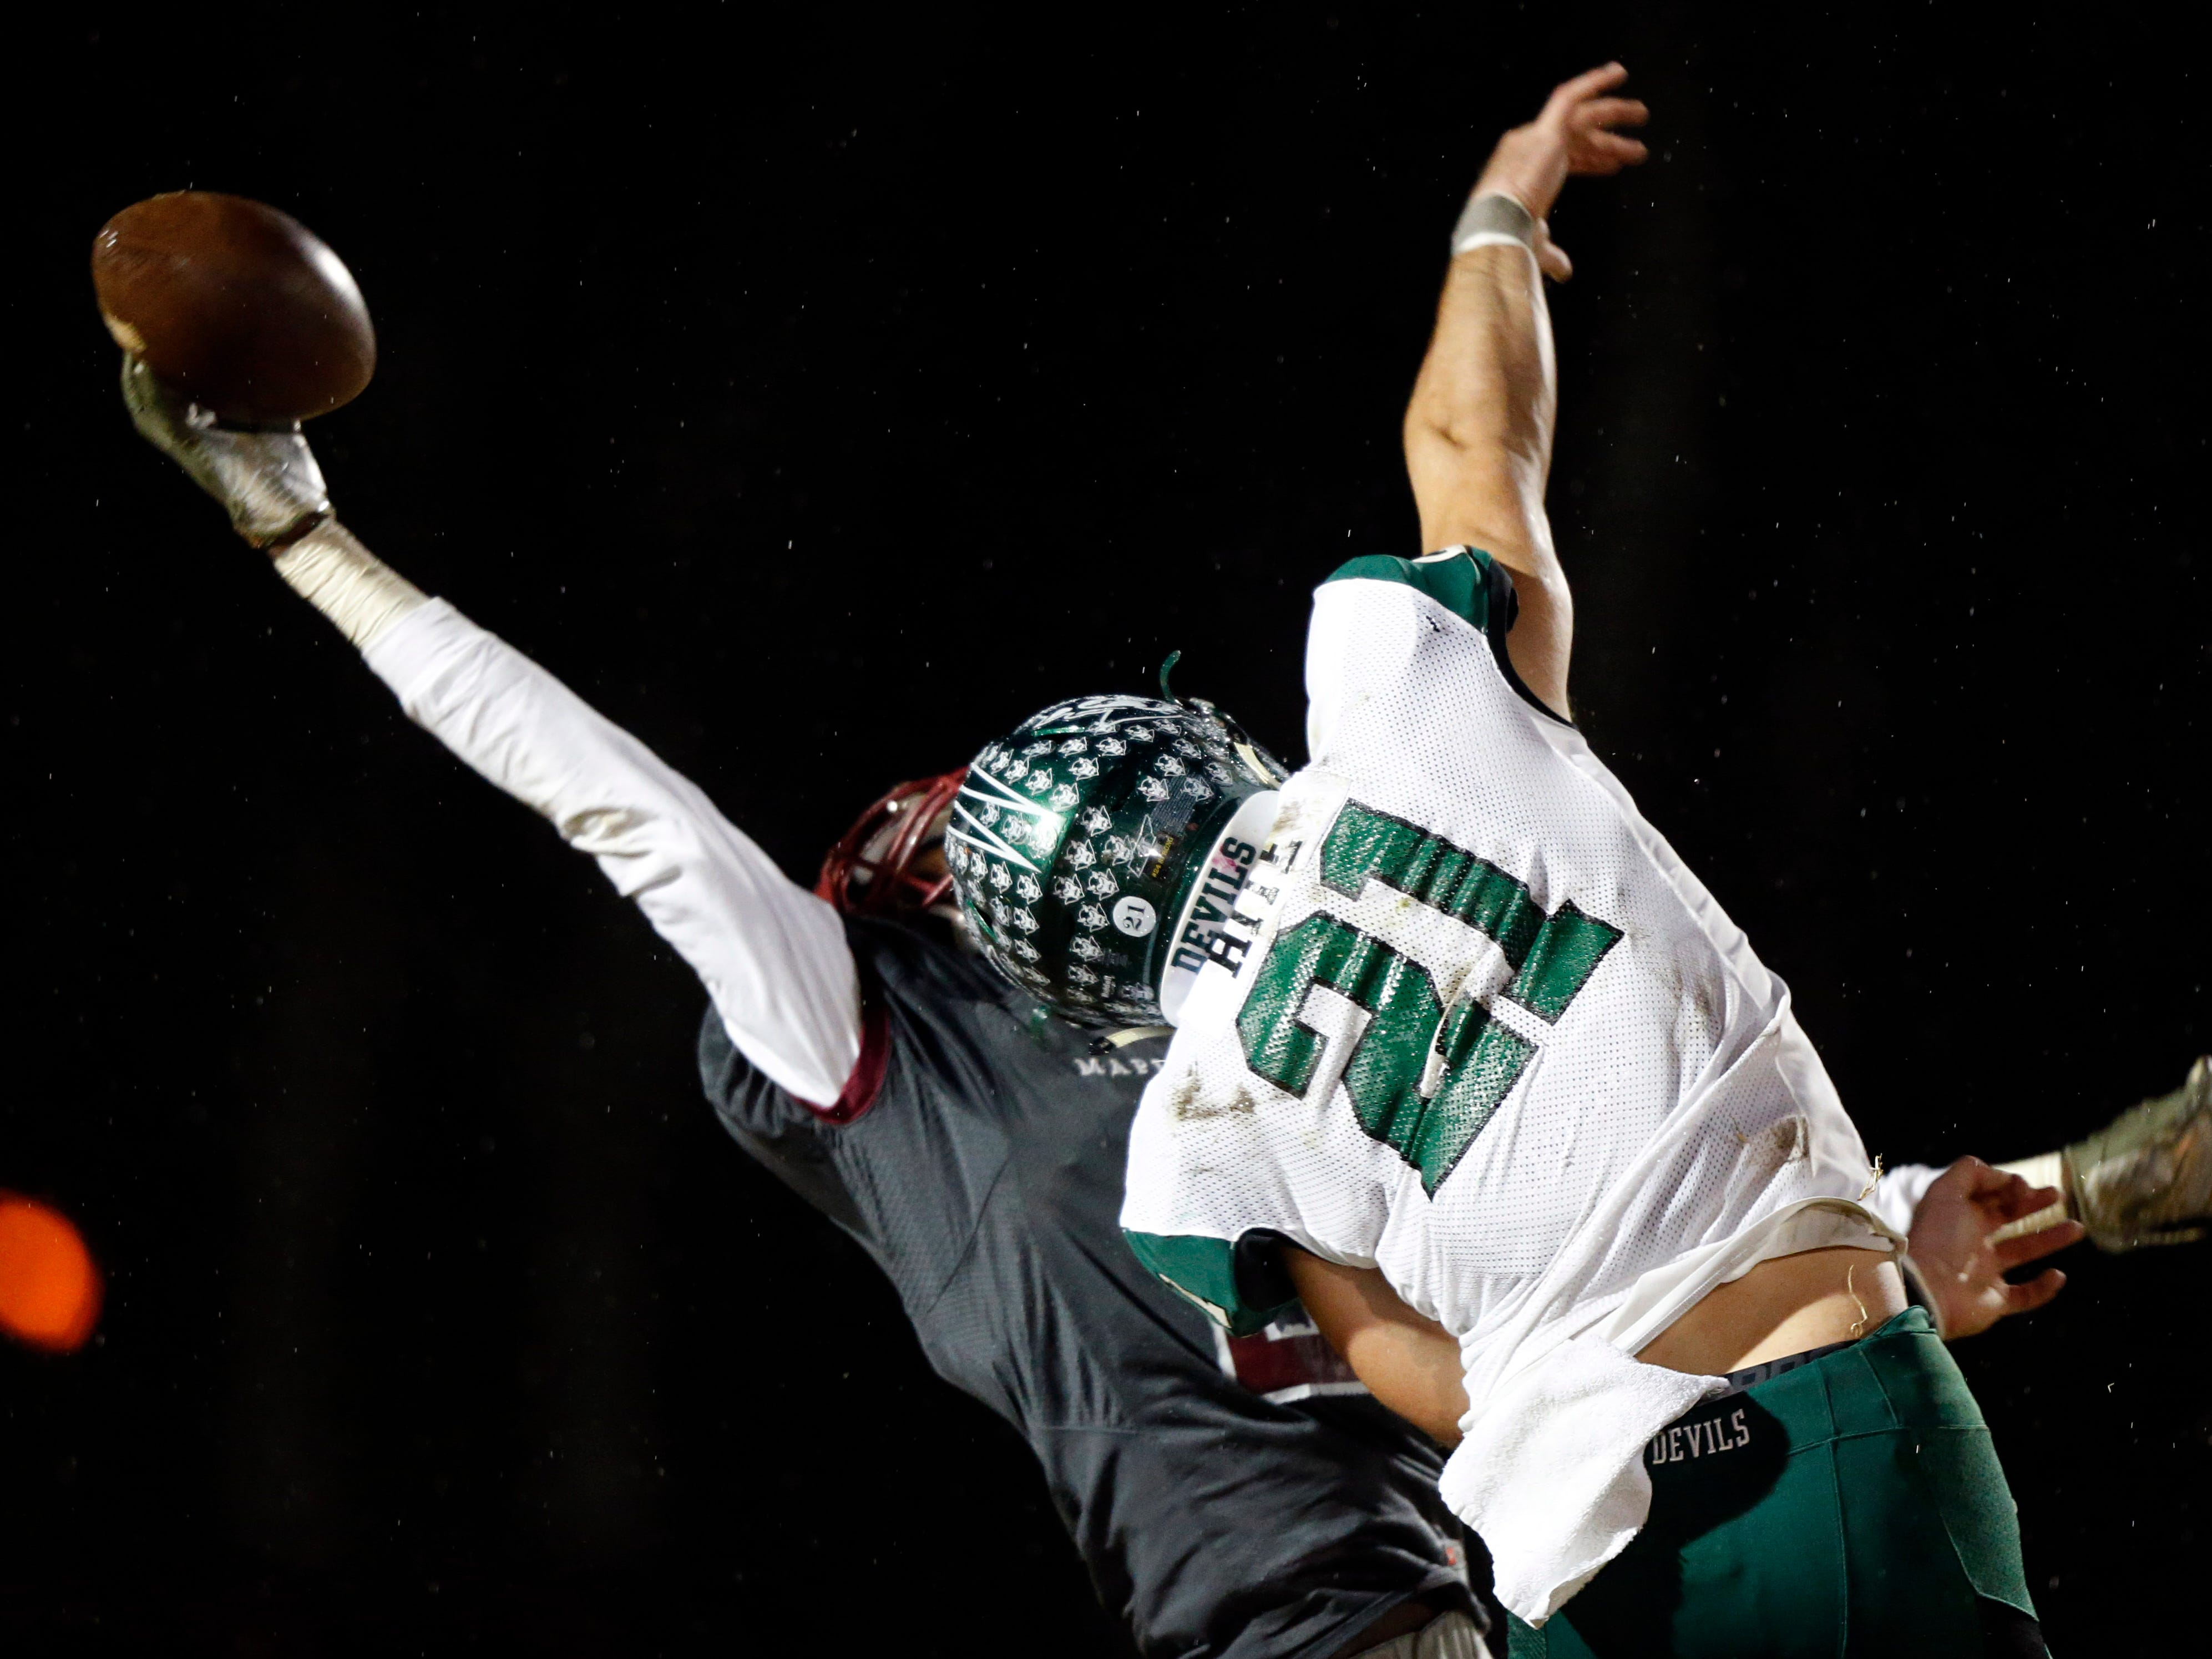 Maplewood's Kendrell Scurrytries to make a one-hand catch as he's defended by Greeneville's Cameron Hite (21) during their game Friday, Nov. 23, 2018, in Nashville, TN.